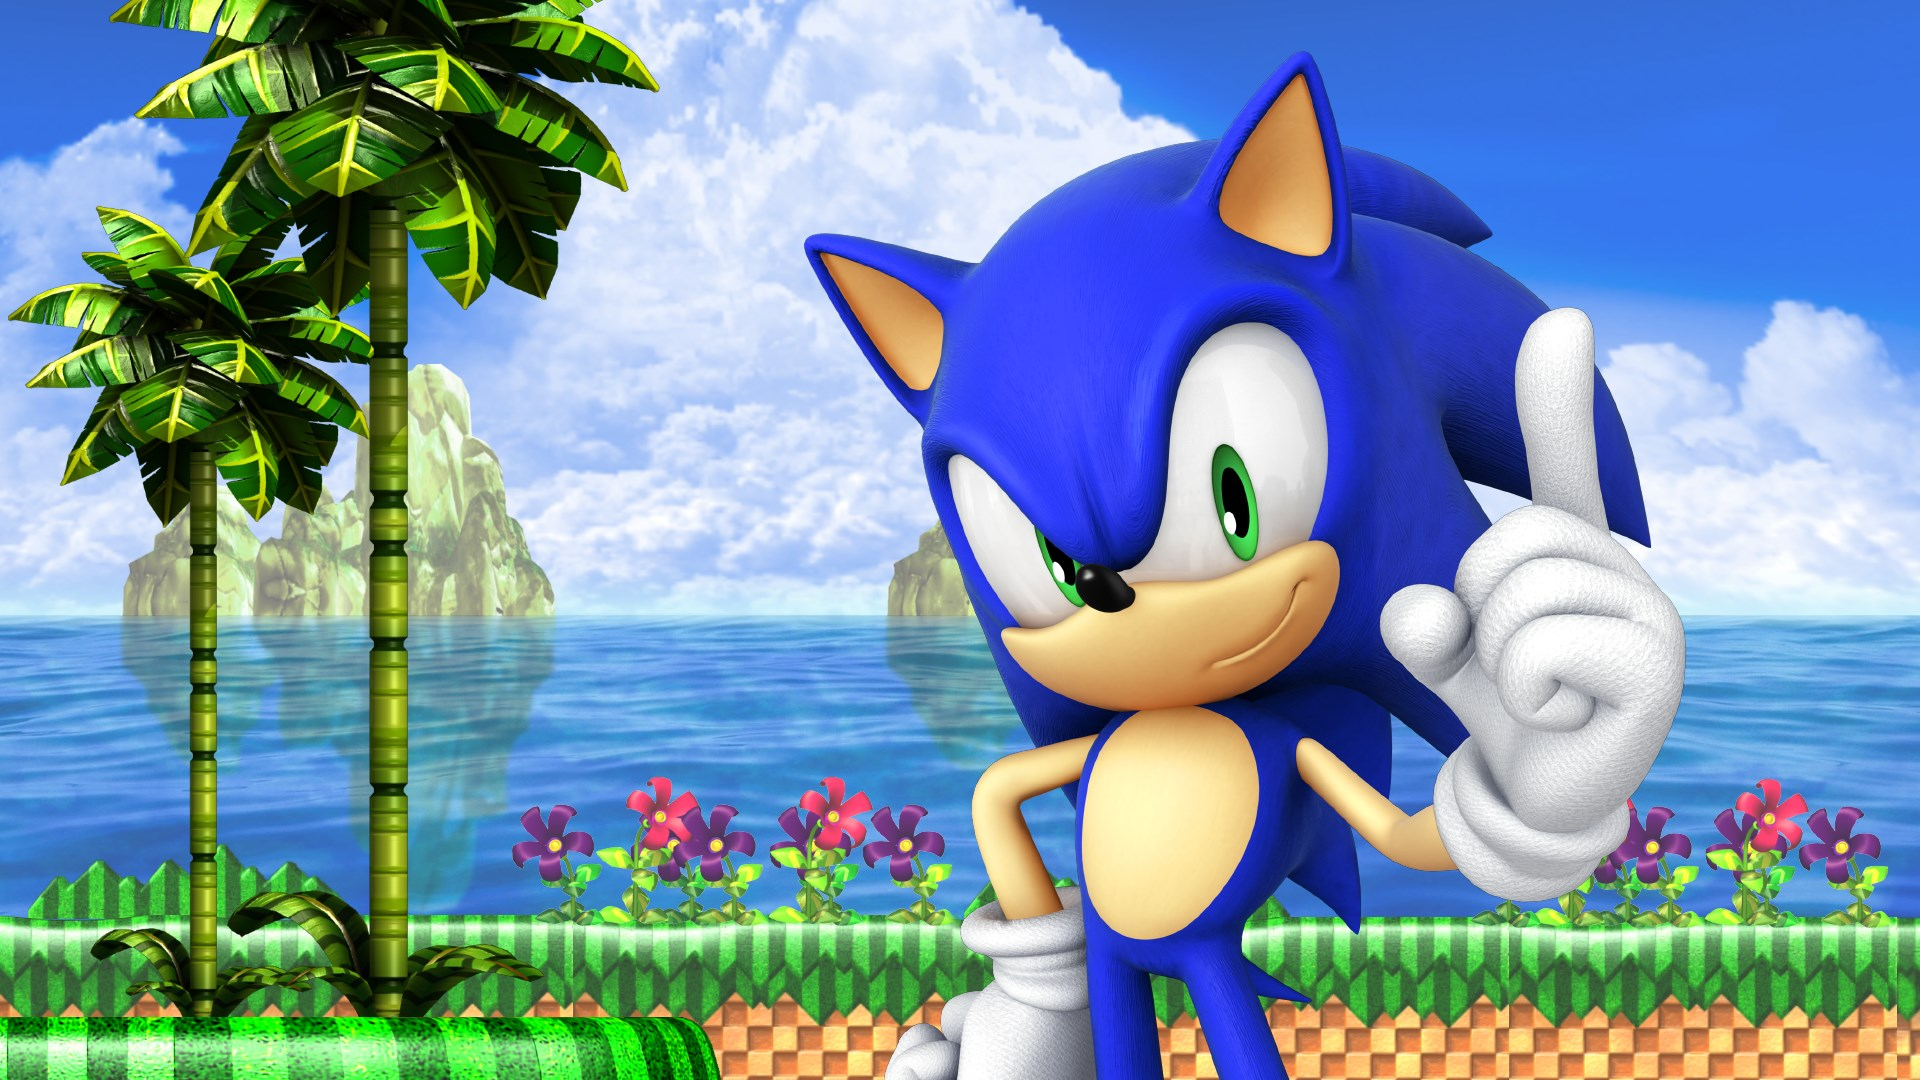 Buy Sonic The Hedgehog 4 Episode I Microsoft Store